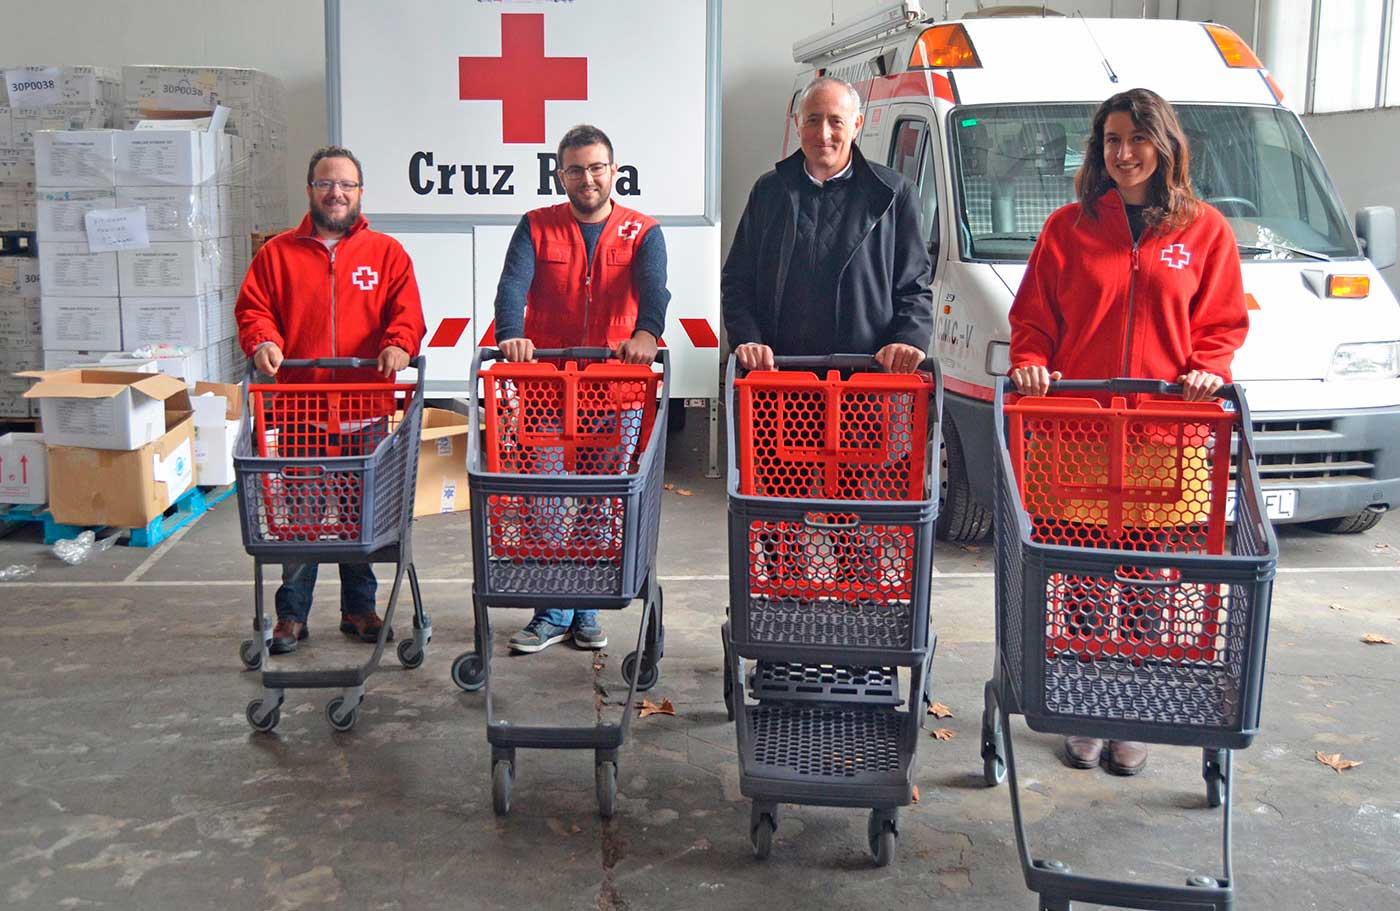 Polycart starts its solidarity campaign Carritos Solidarios with the donation of a fleet of plastic grocery cart to Red Cross